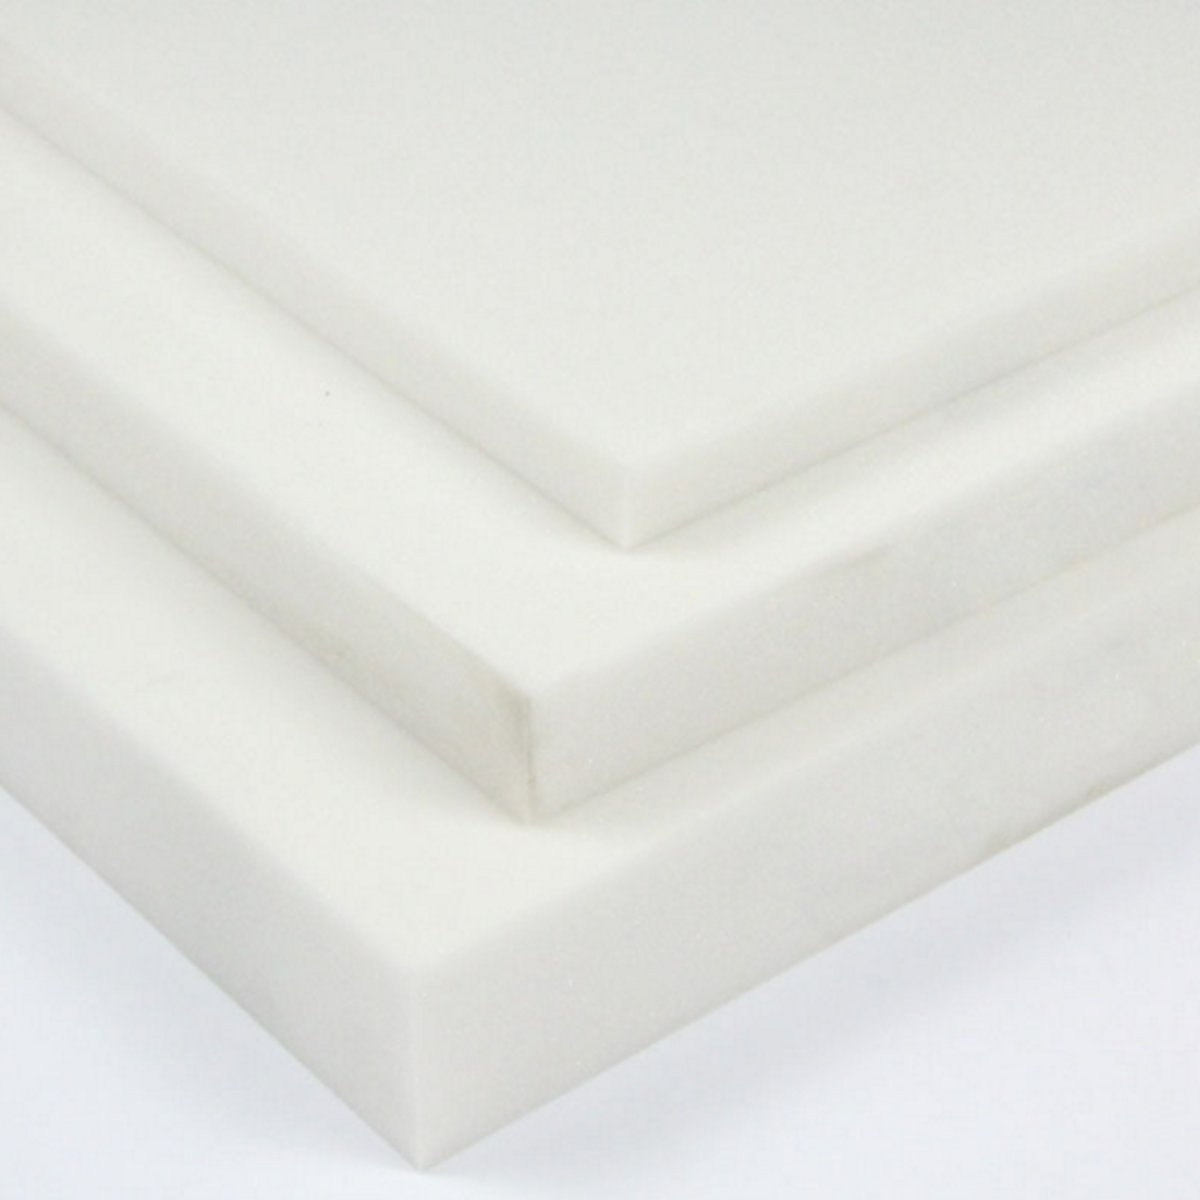 75x40cm High Density Upholstery Cushion Foam Chair Sofa Seat Foam Pad Sheet